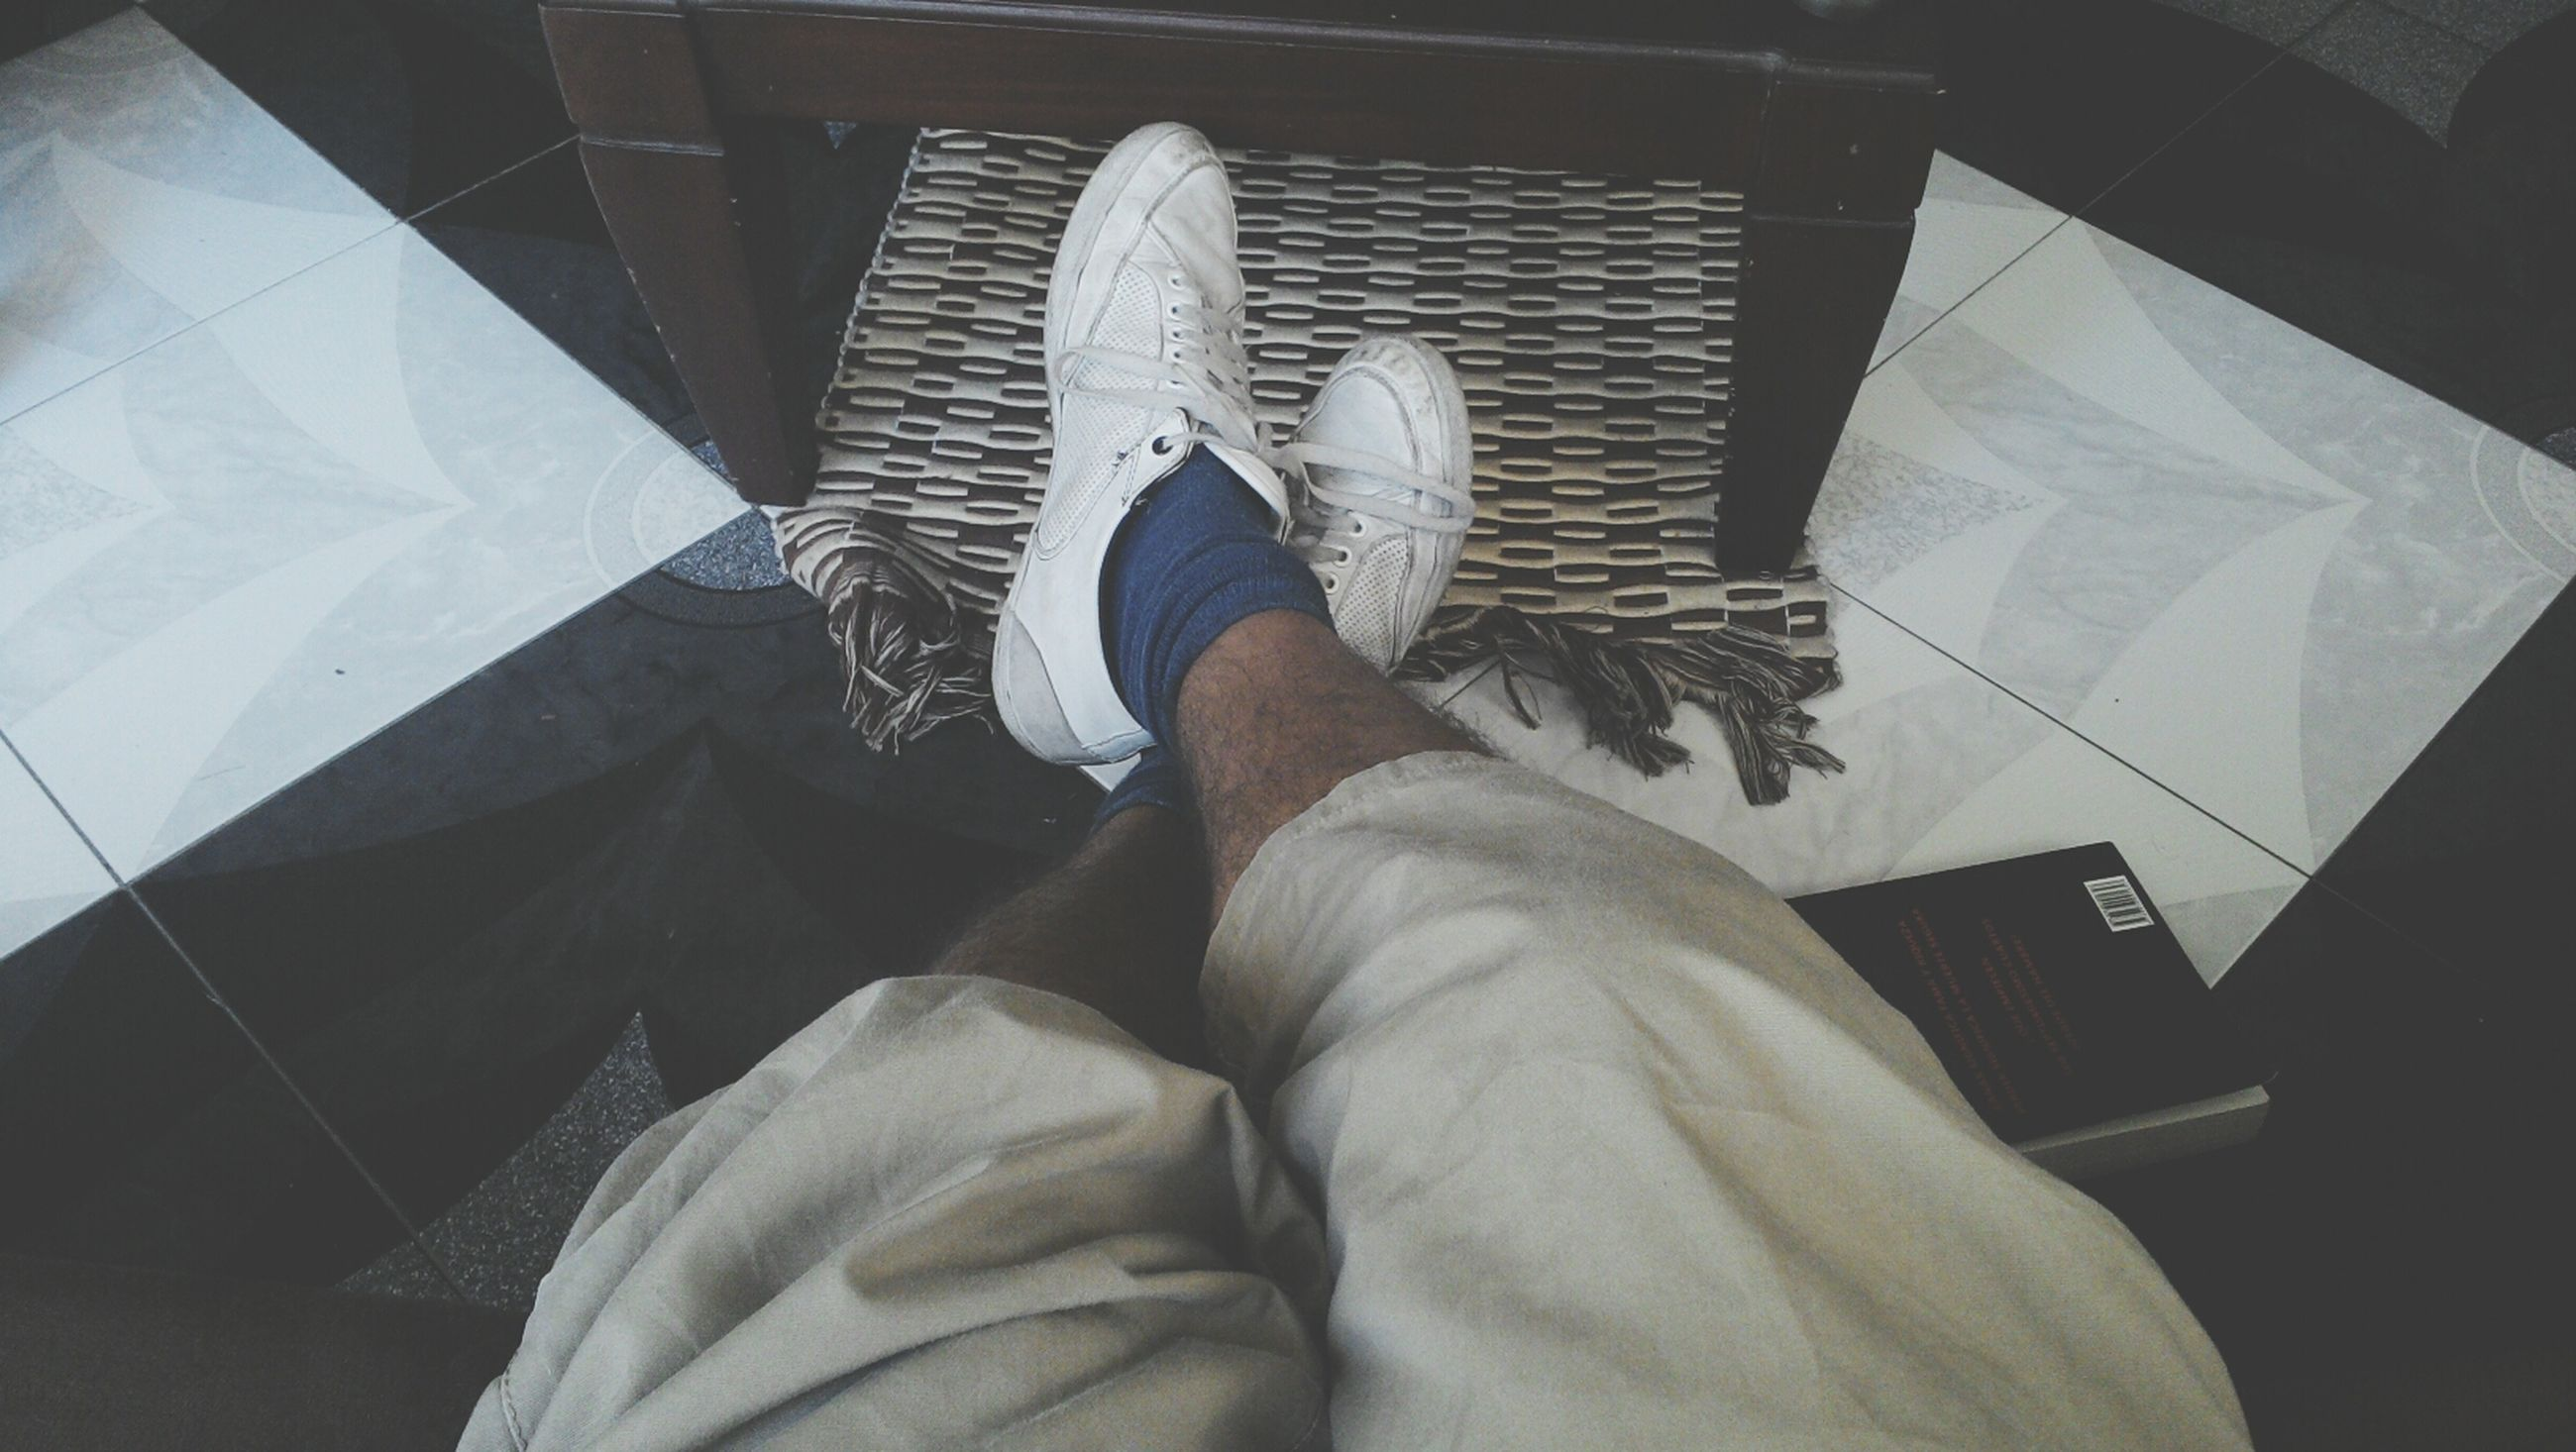 indoors, low section, person, personal perspective, lifestyles, men, sitting, relaxation, leisure activity, high angle view, human foot, unrecognizable person, part of, home interior, shoe